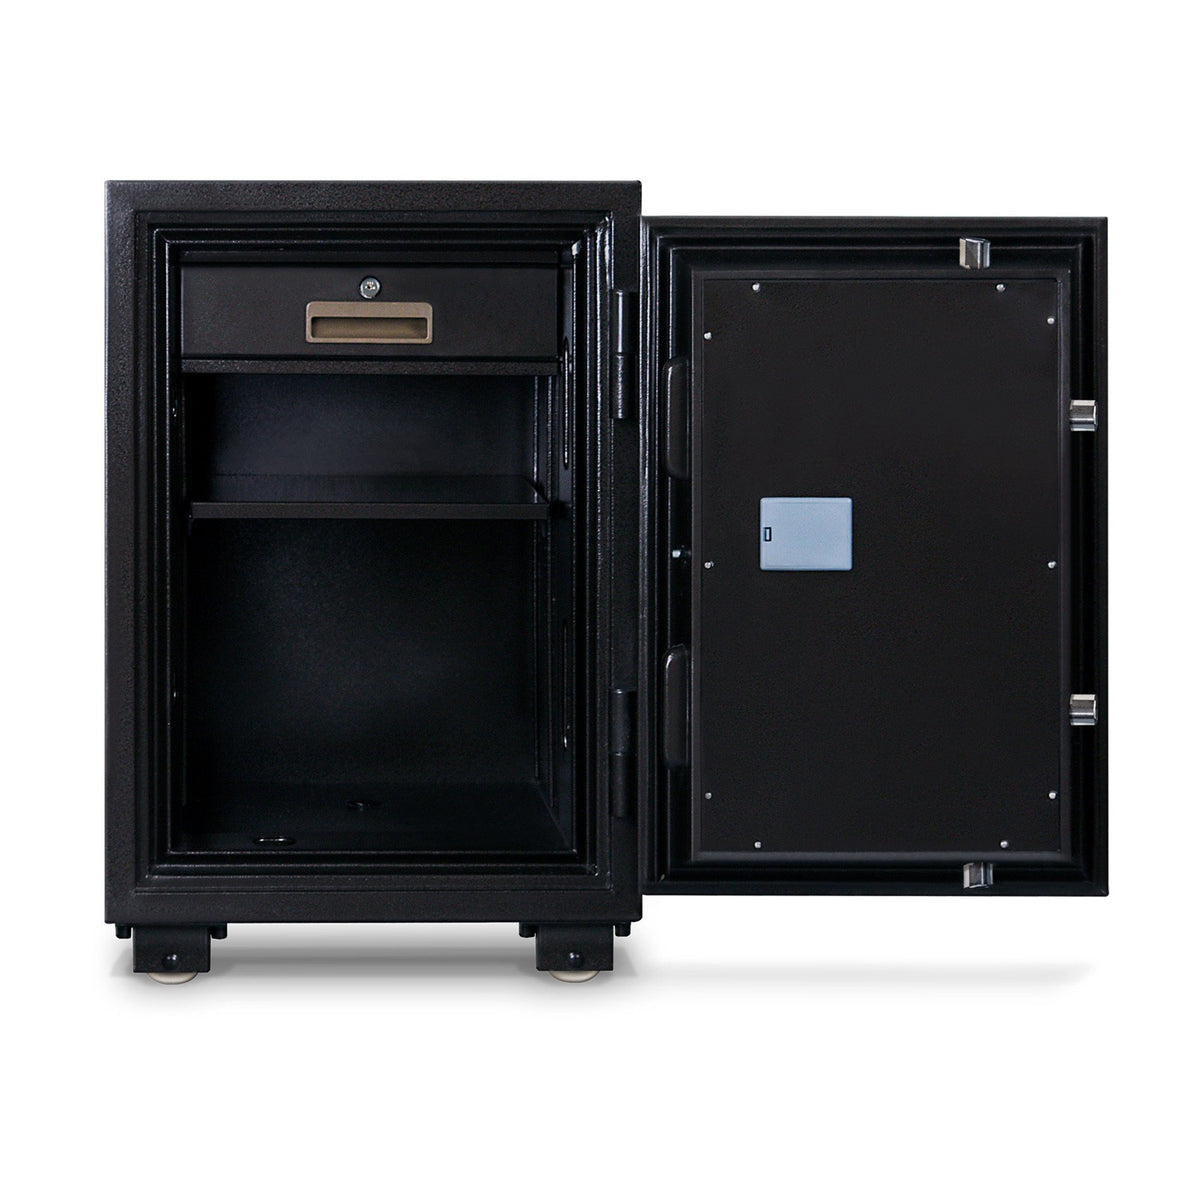 Fireproof Safes & Waterproof Chests - Mesa MF75E UL One Hour Fireproof Safe